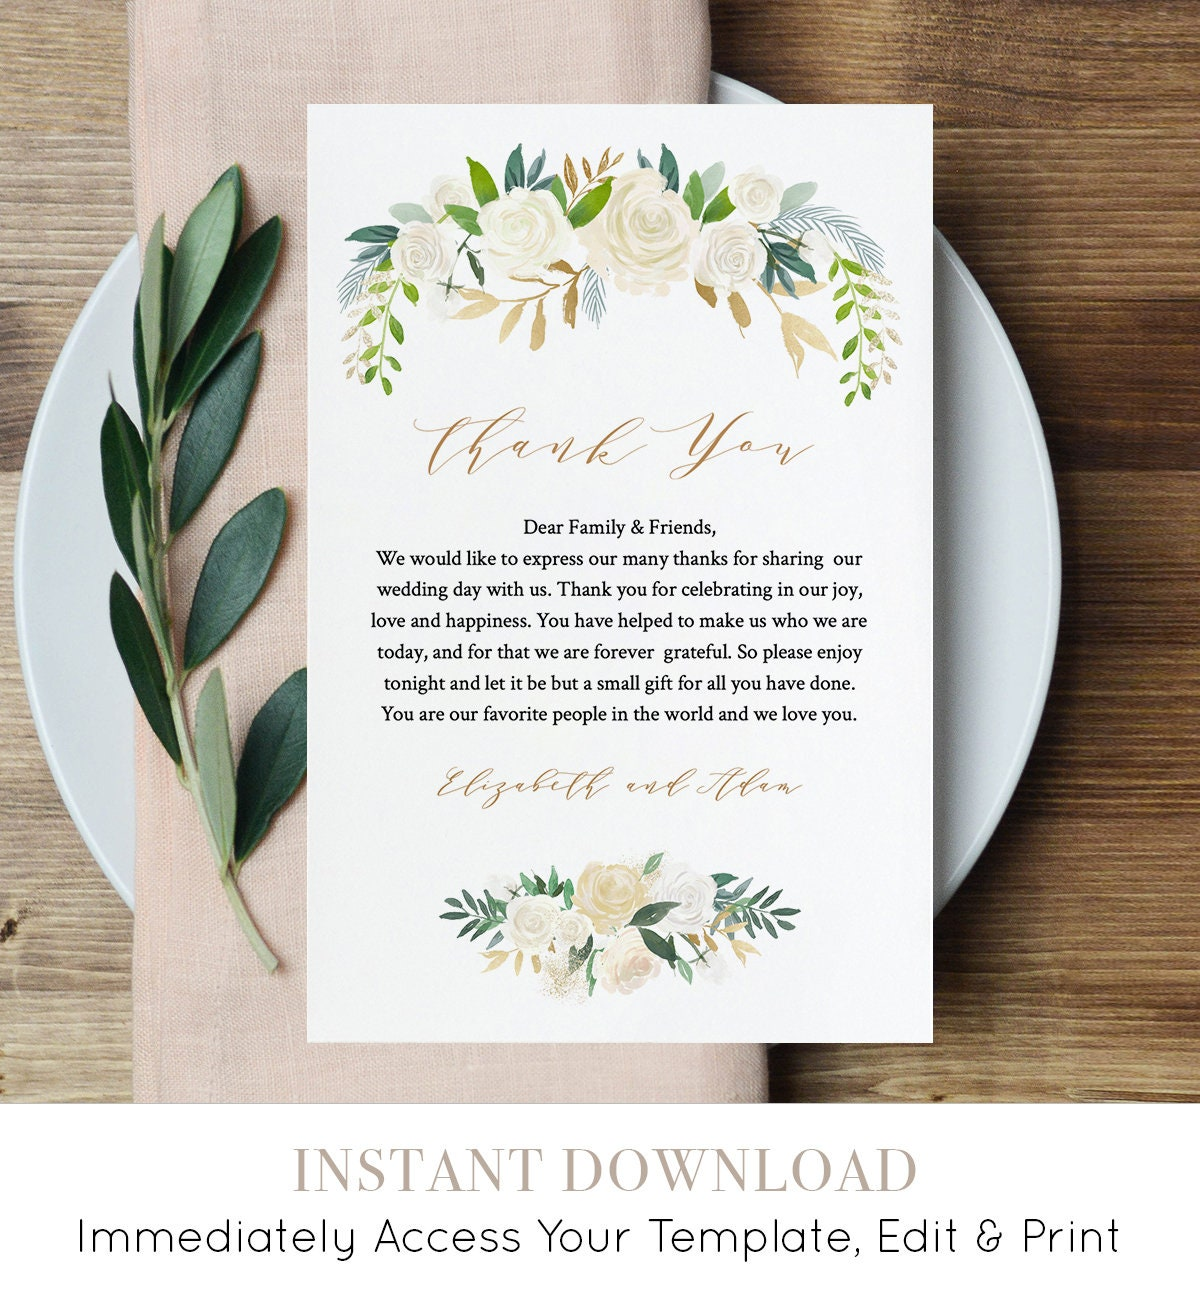 printable wedding thank you letter napkin note in lieu of favor card template floral wedding reception card instant download 021 107tyn